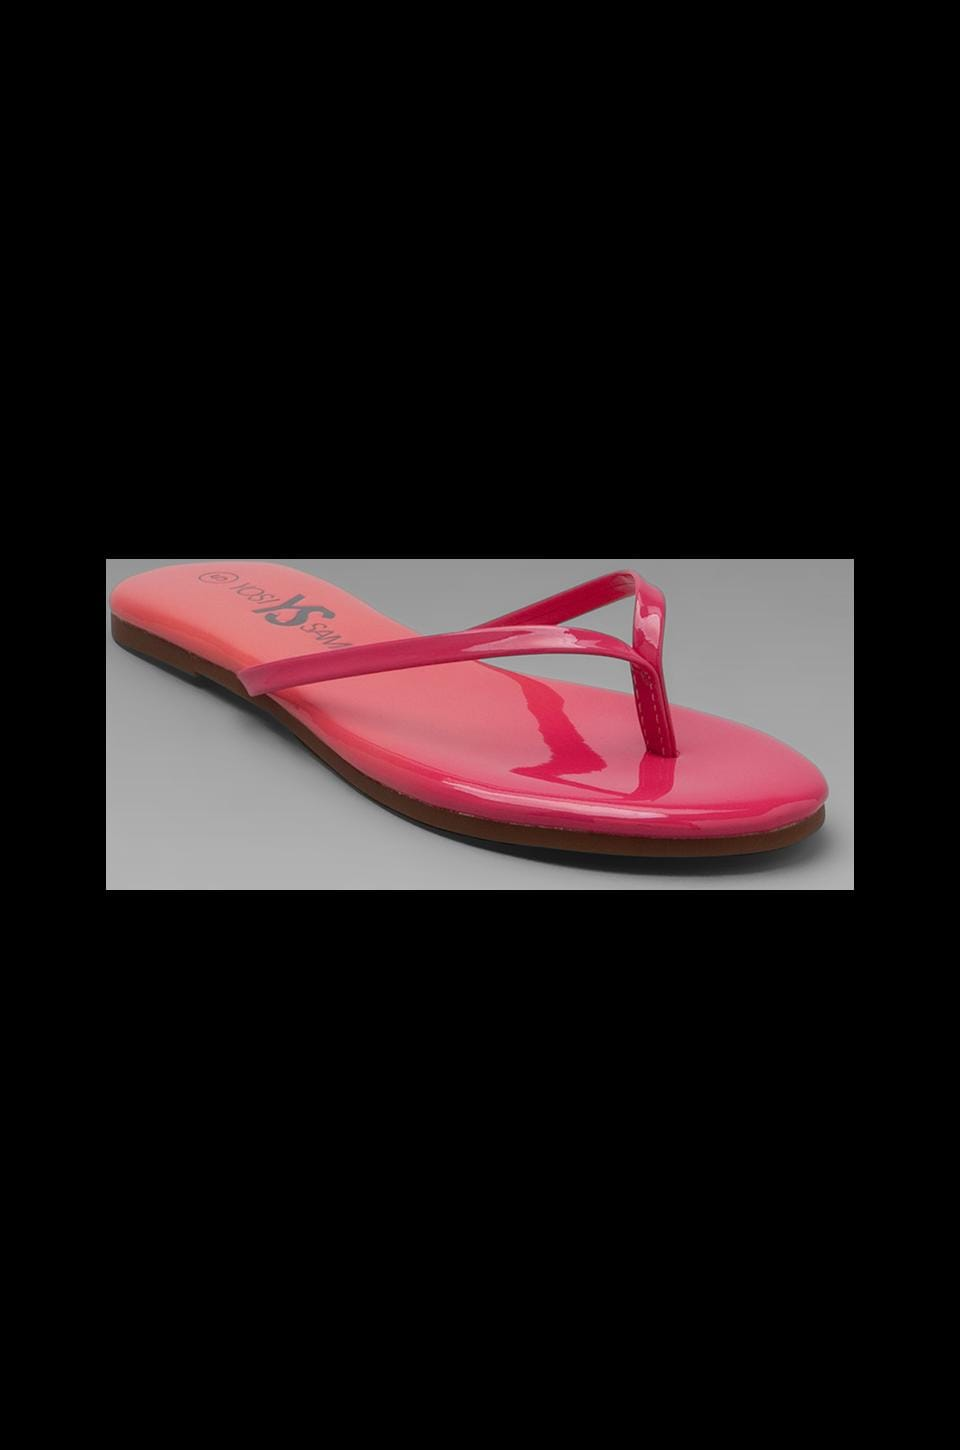 Yosi Samra Omber Sandal in Burnt Coral/Pink Sunset